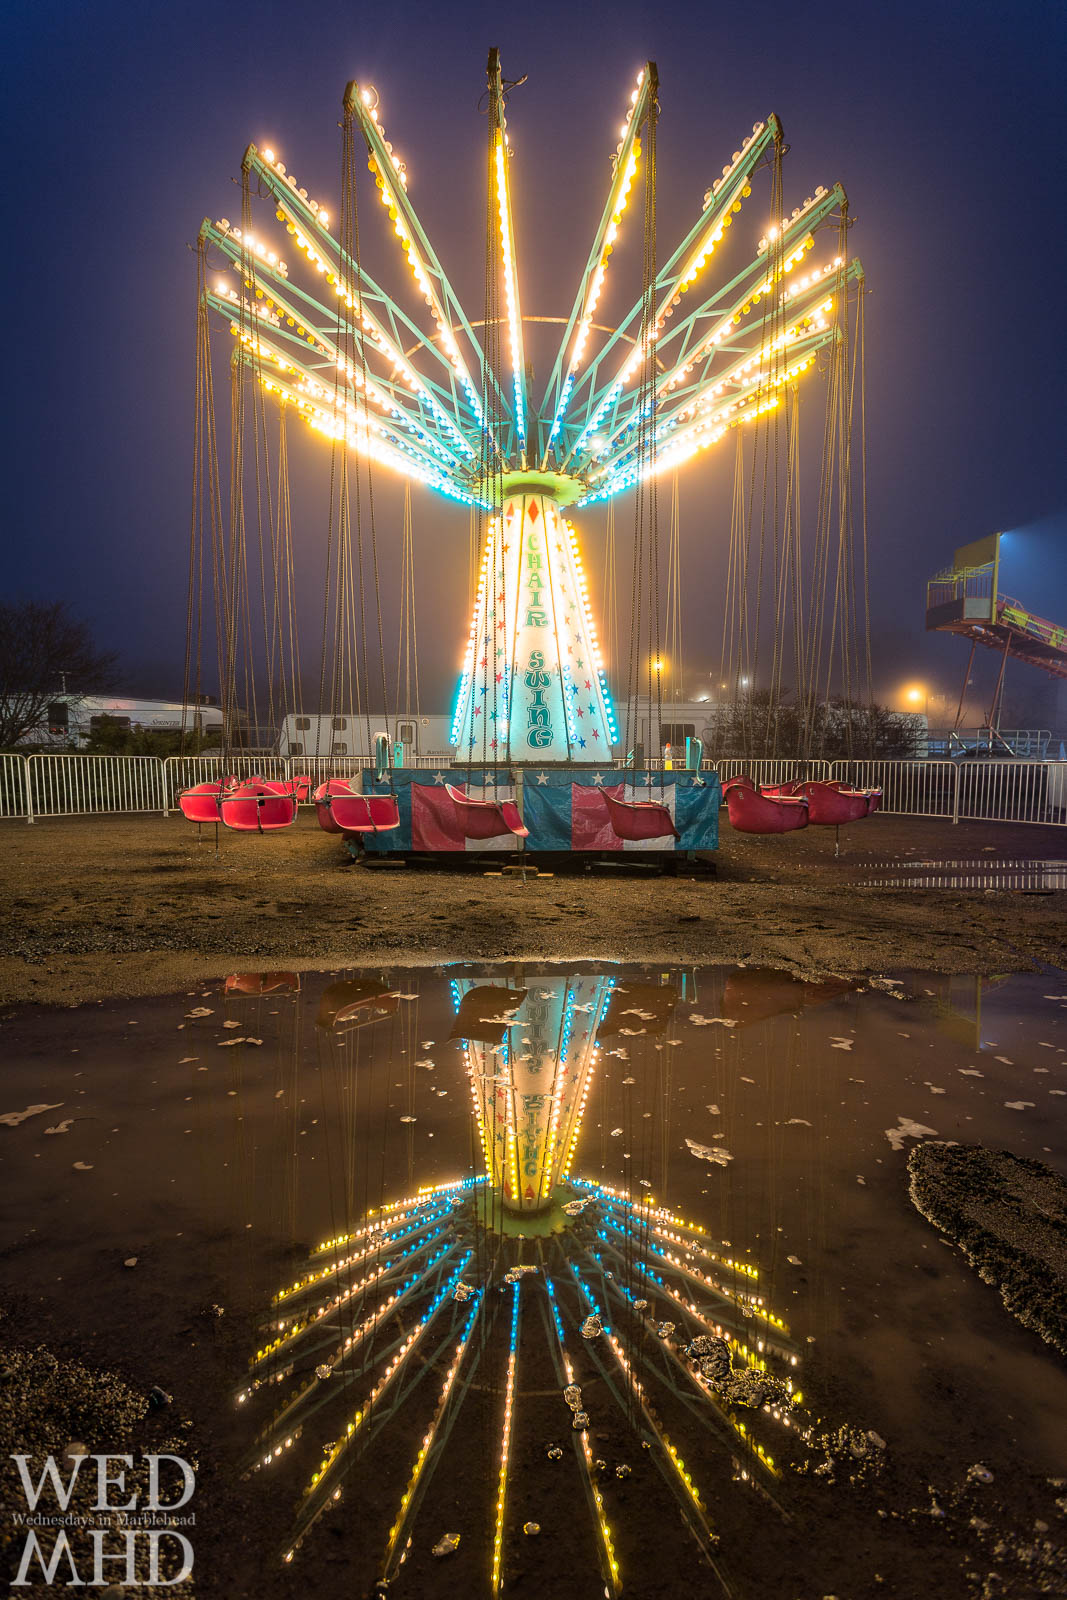 The Marblehead Carnival starts tomorrow (Thursday May 4th) and continues until Sunday bringing with it rainy days.